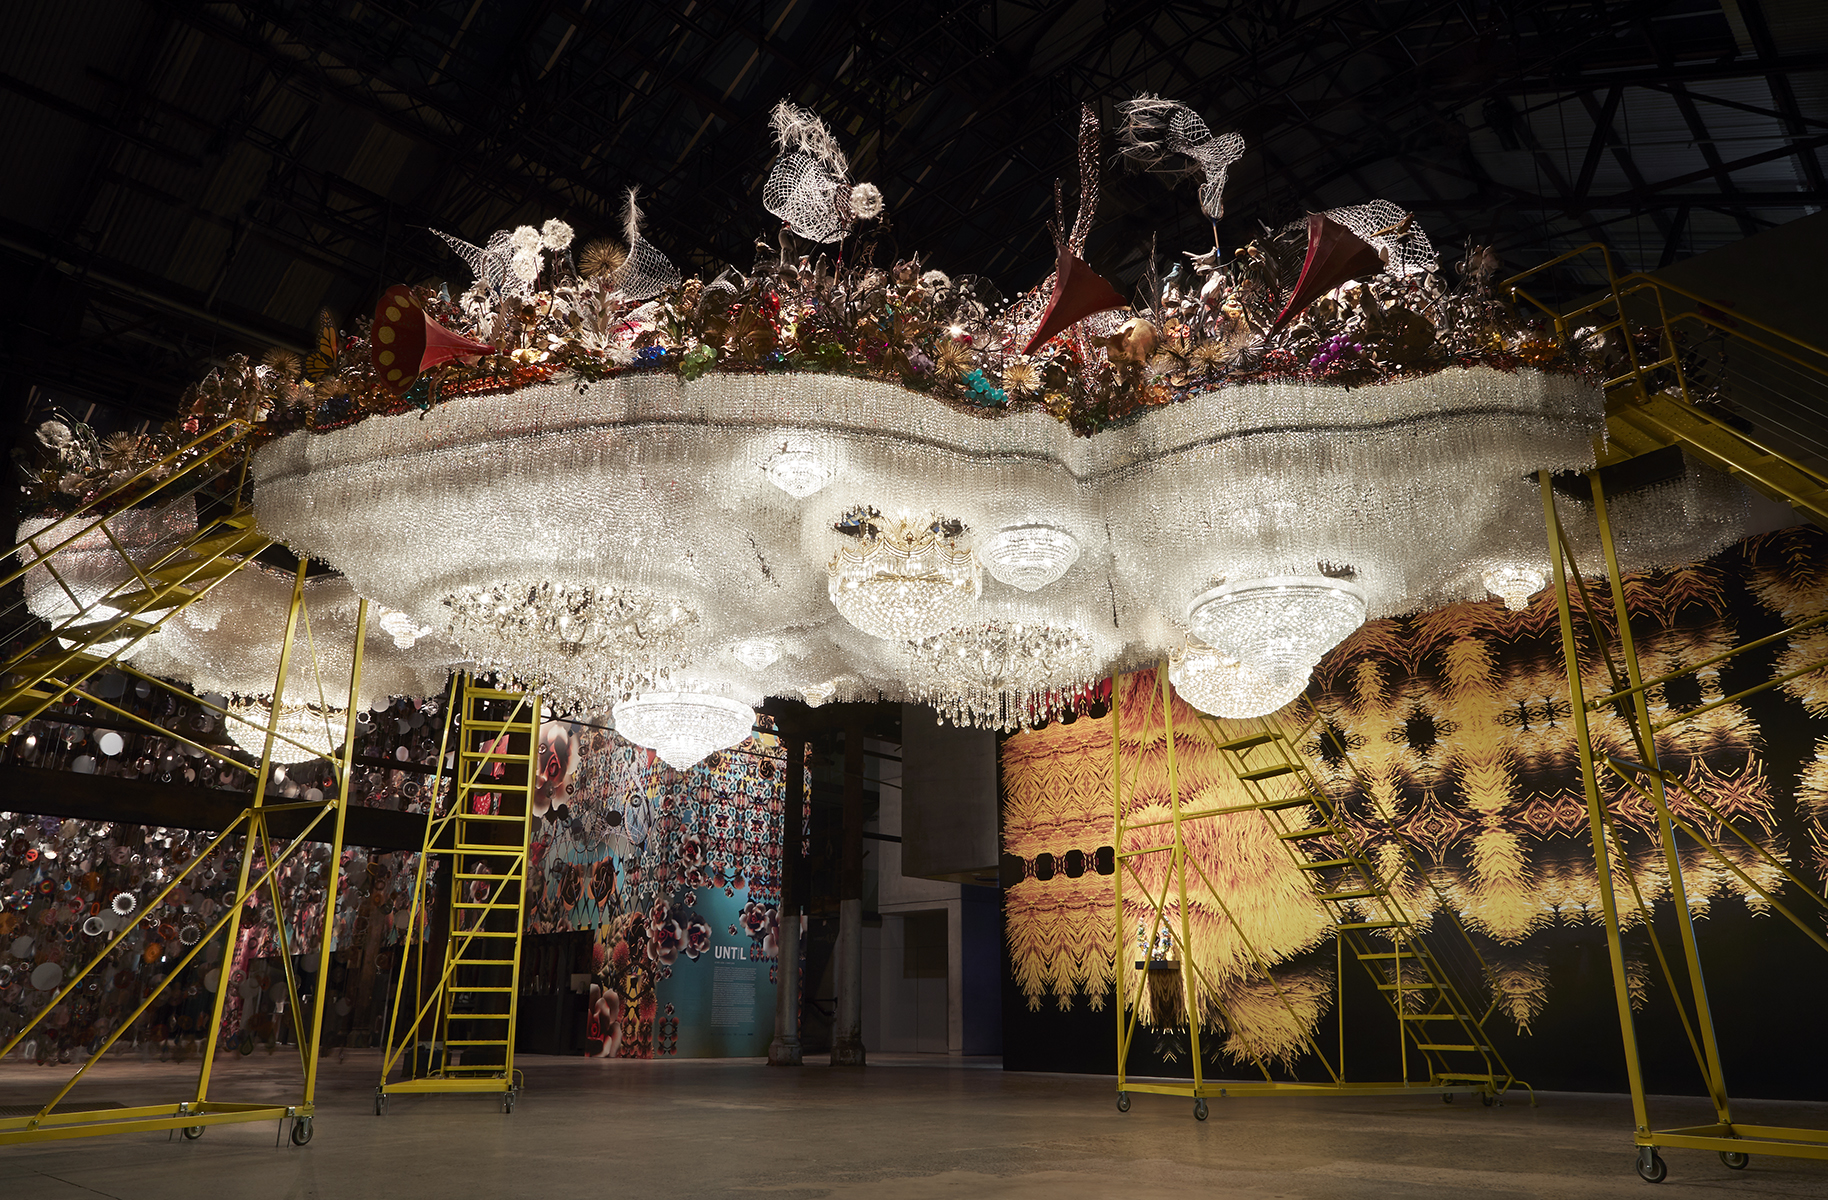 Nick-Cave-UNTIL-Carriageworks-Image-Zan-Wimberley-2018-12-1.jpg